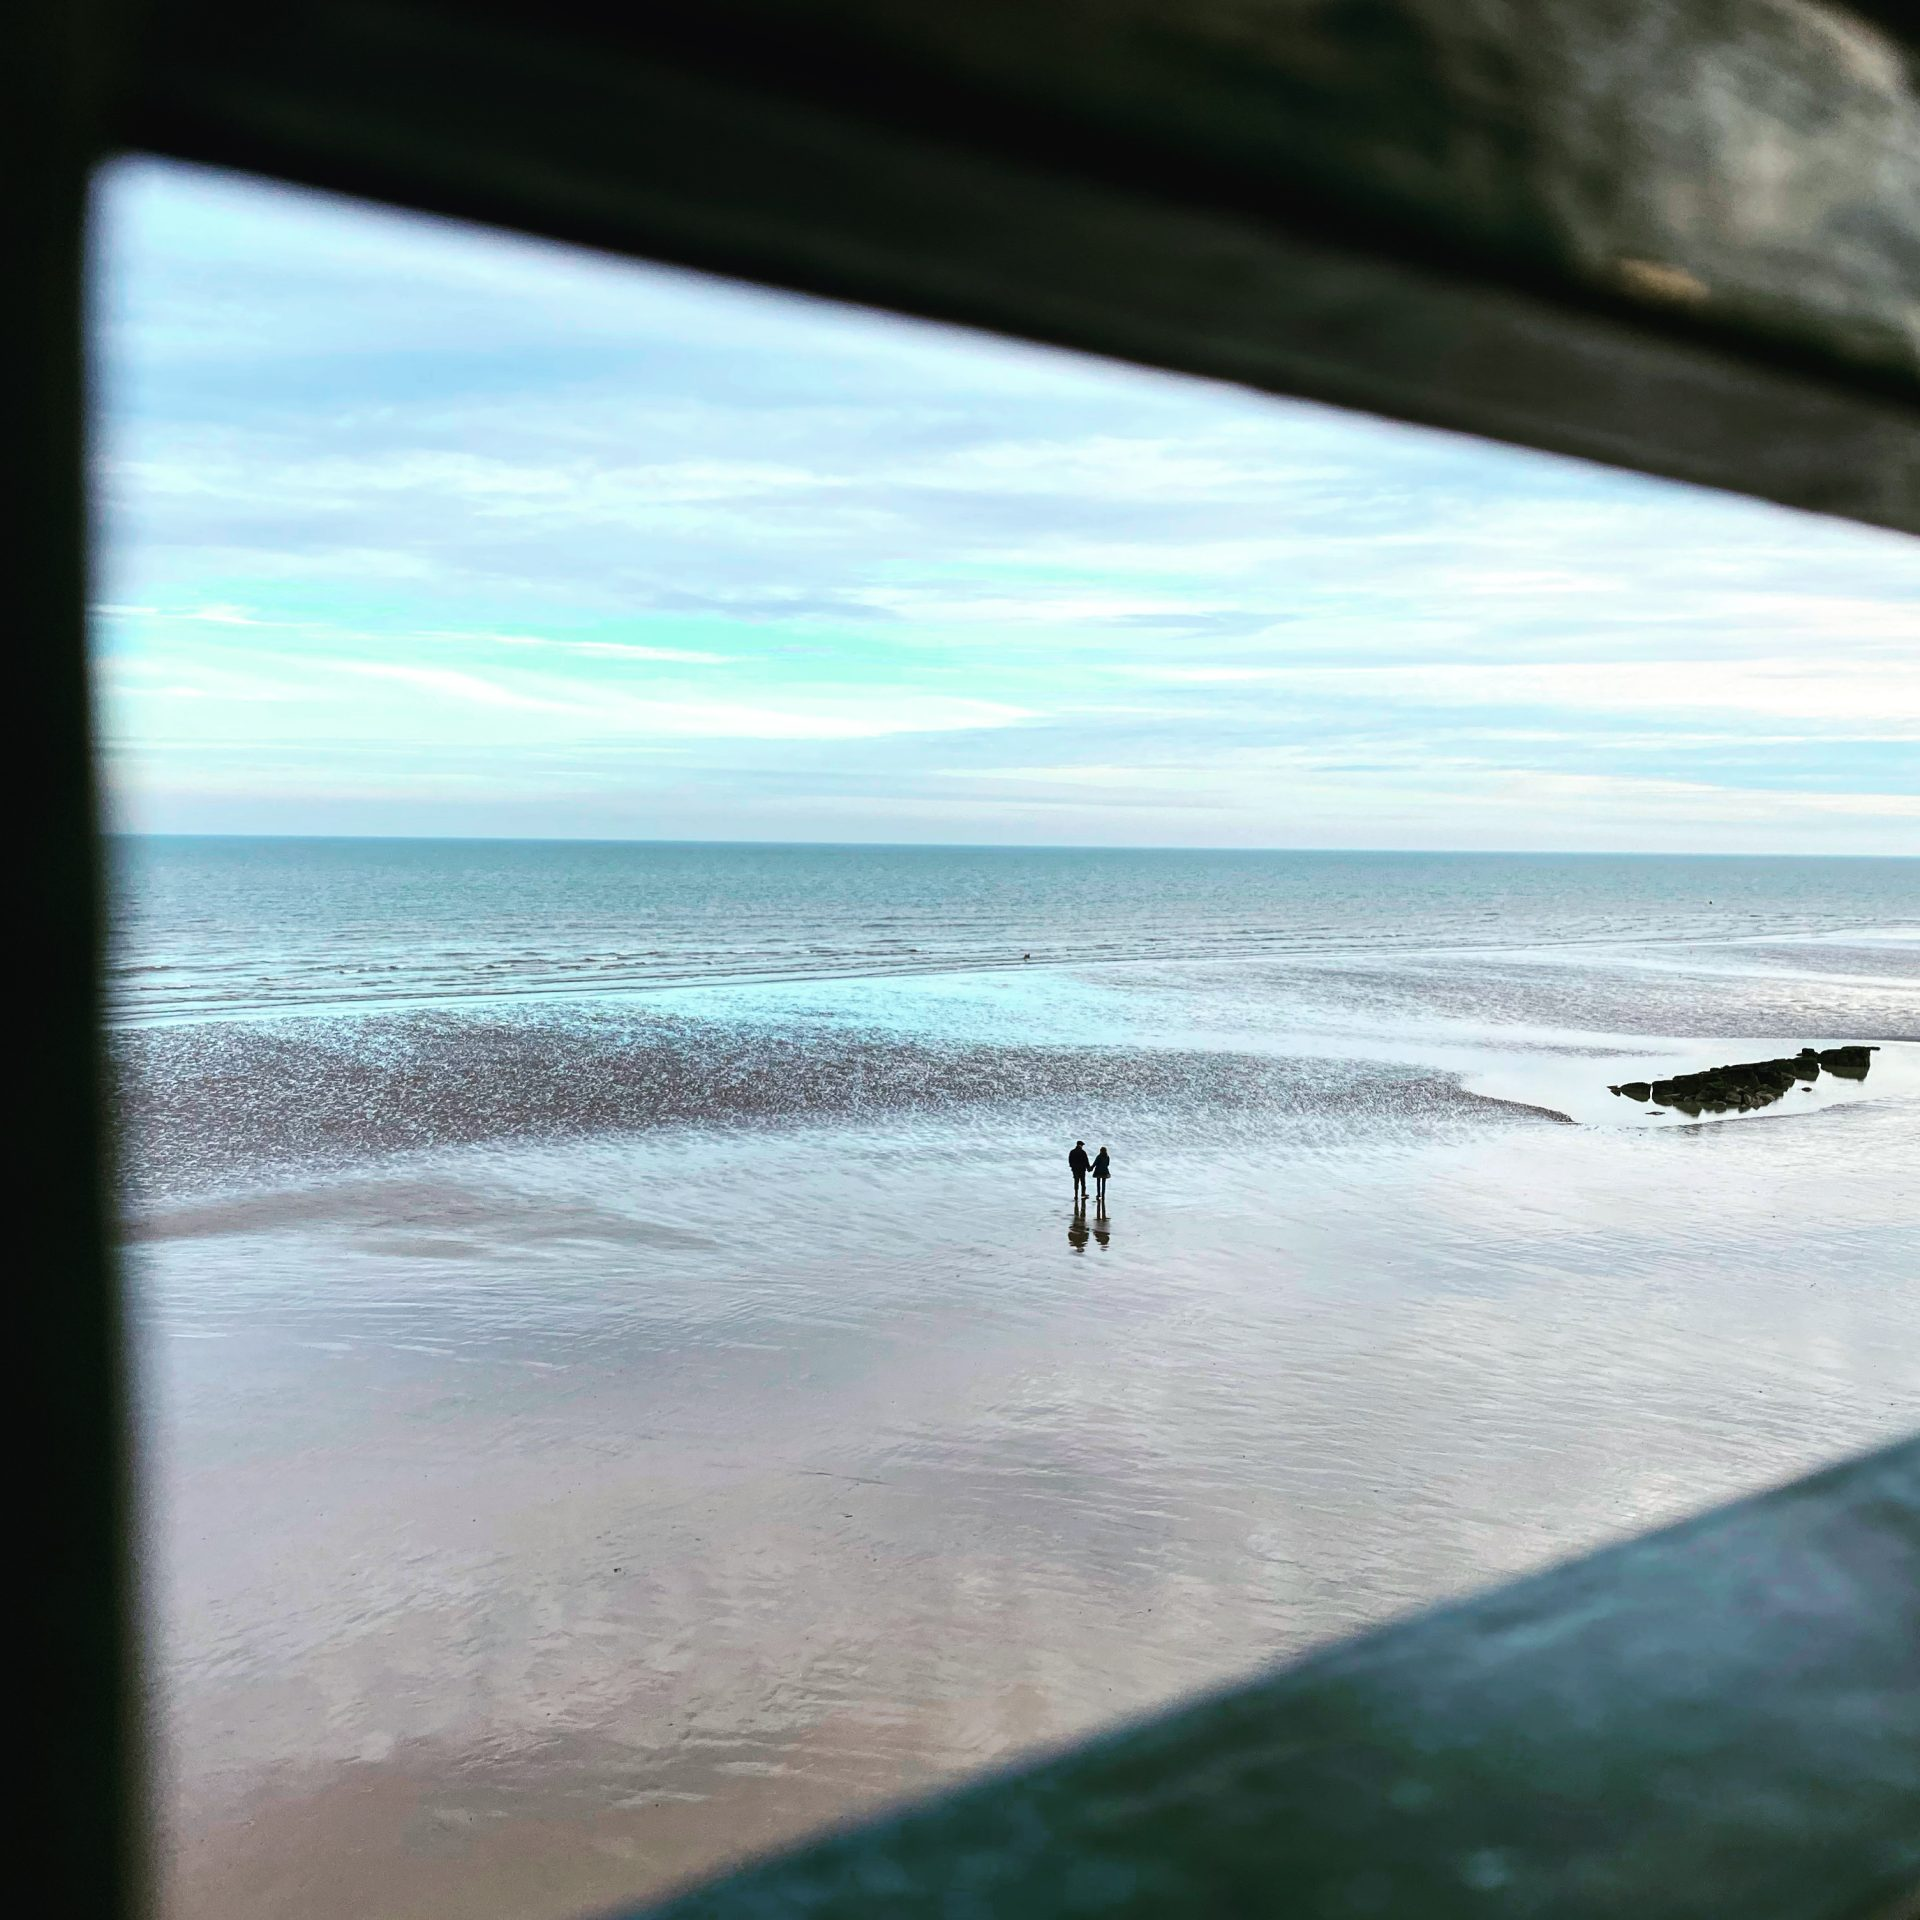 The image depicts two silhouetted figure walking along a beach at low tide. The image is framed through what looks like a window or mirror.